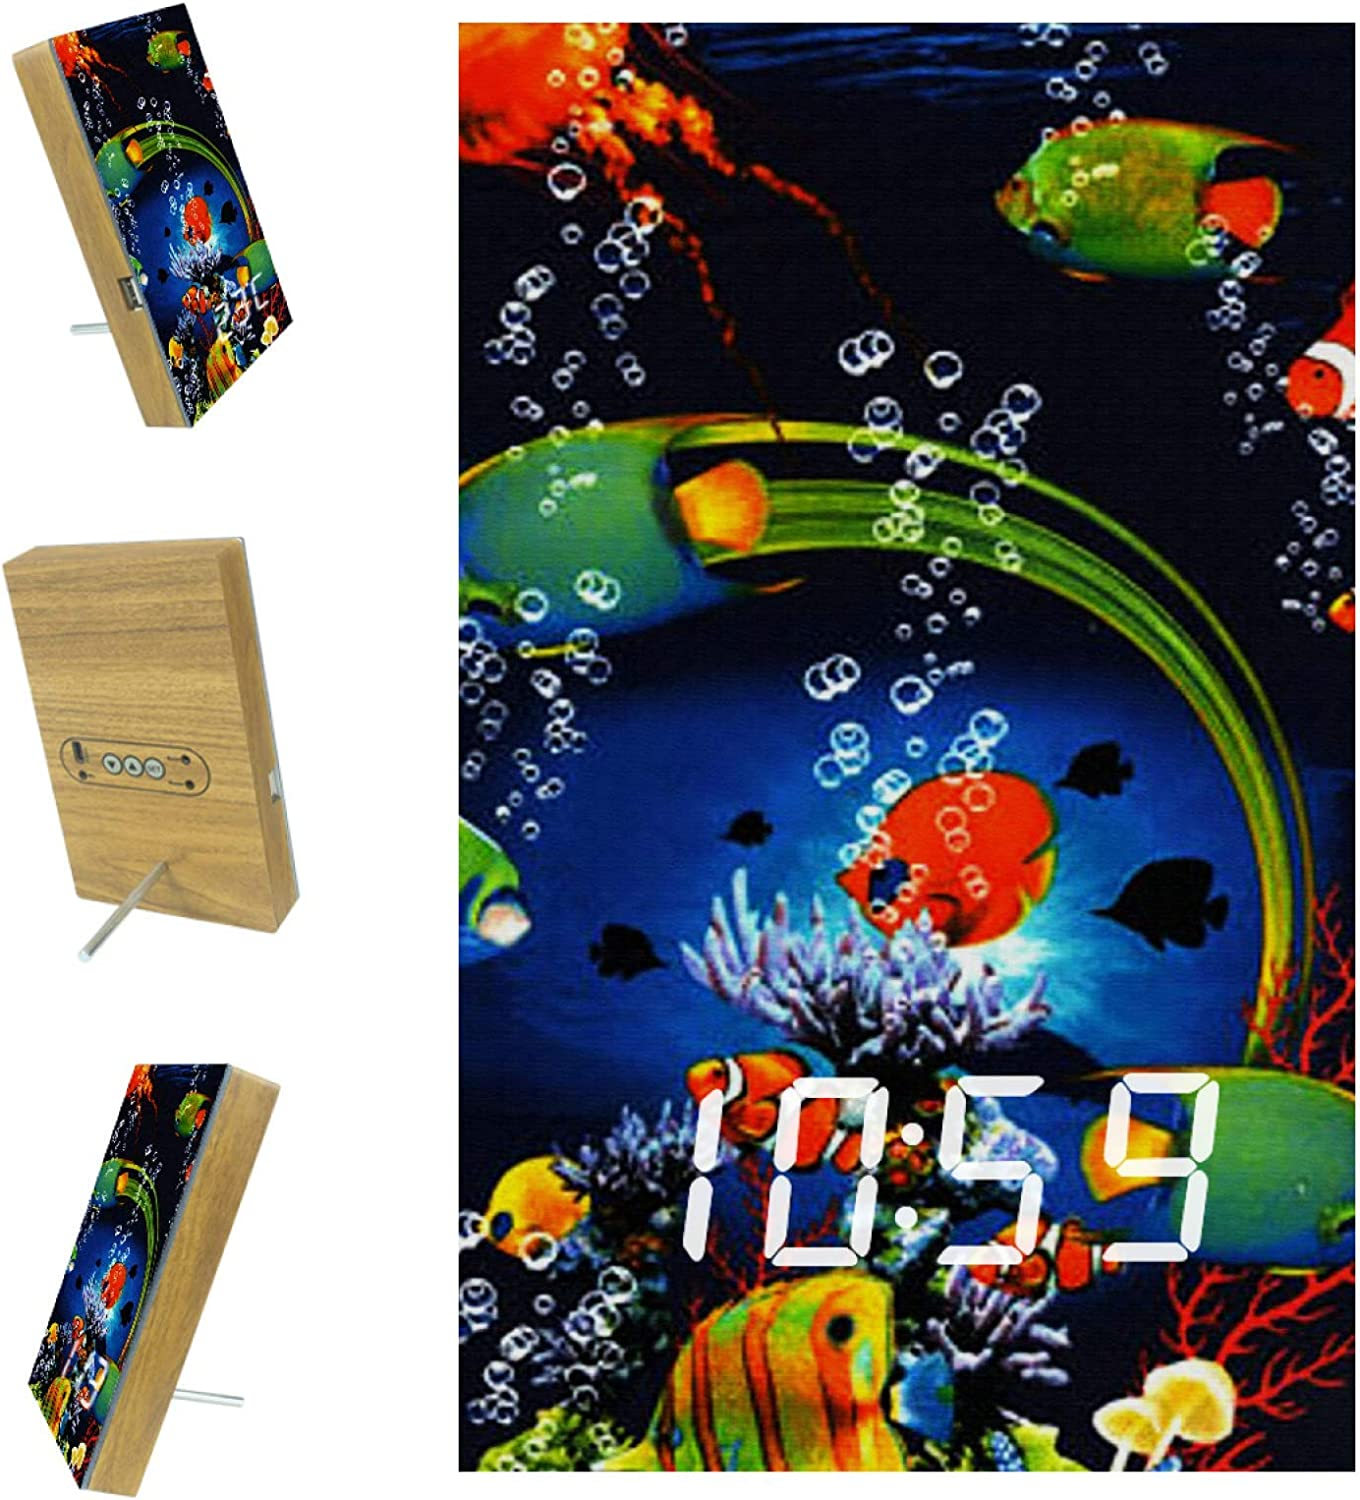 Digital Alarm Clock Complete Free Shipping Ocean Fish for Ala Kitchen Bedrooms Max 63% OFF 3 Office